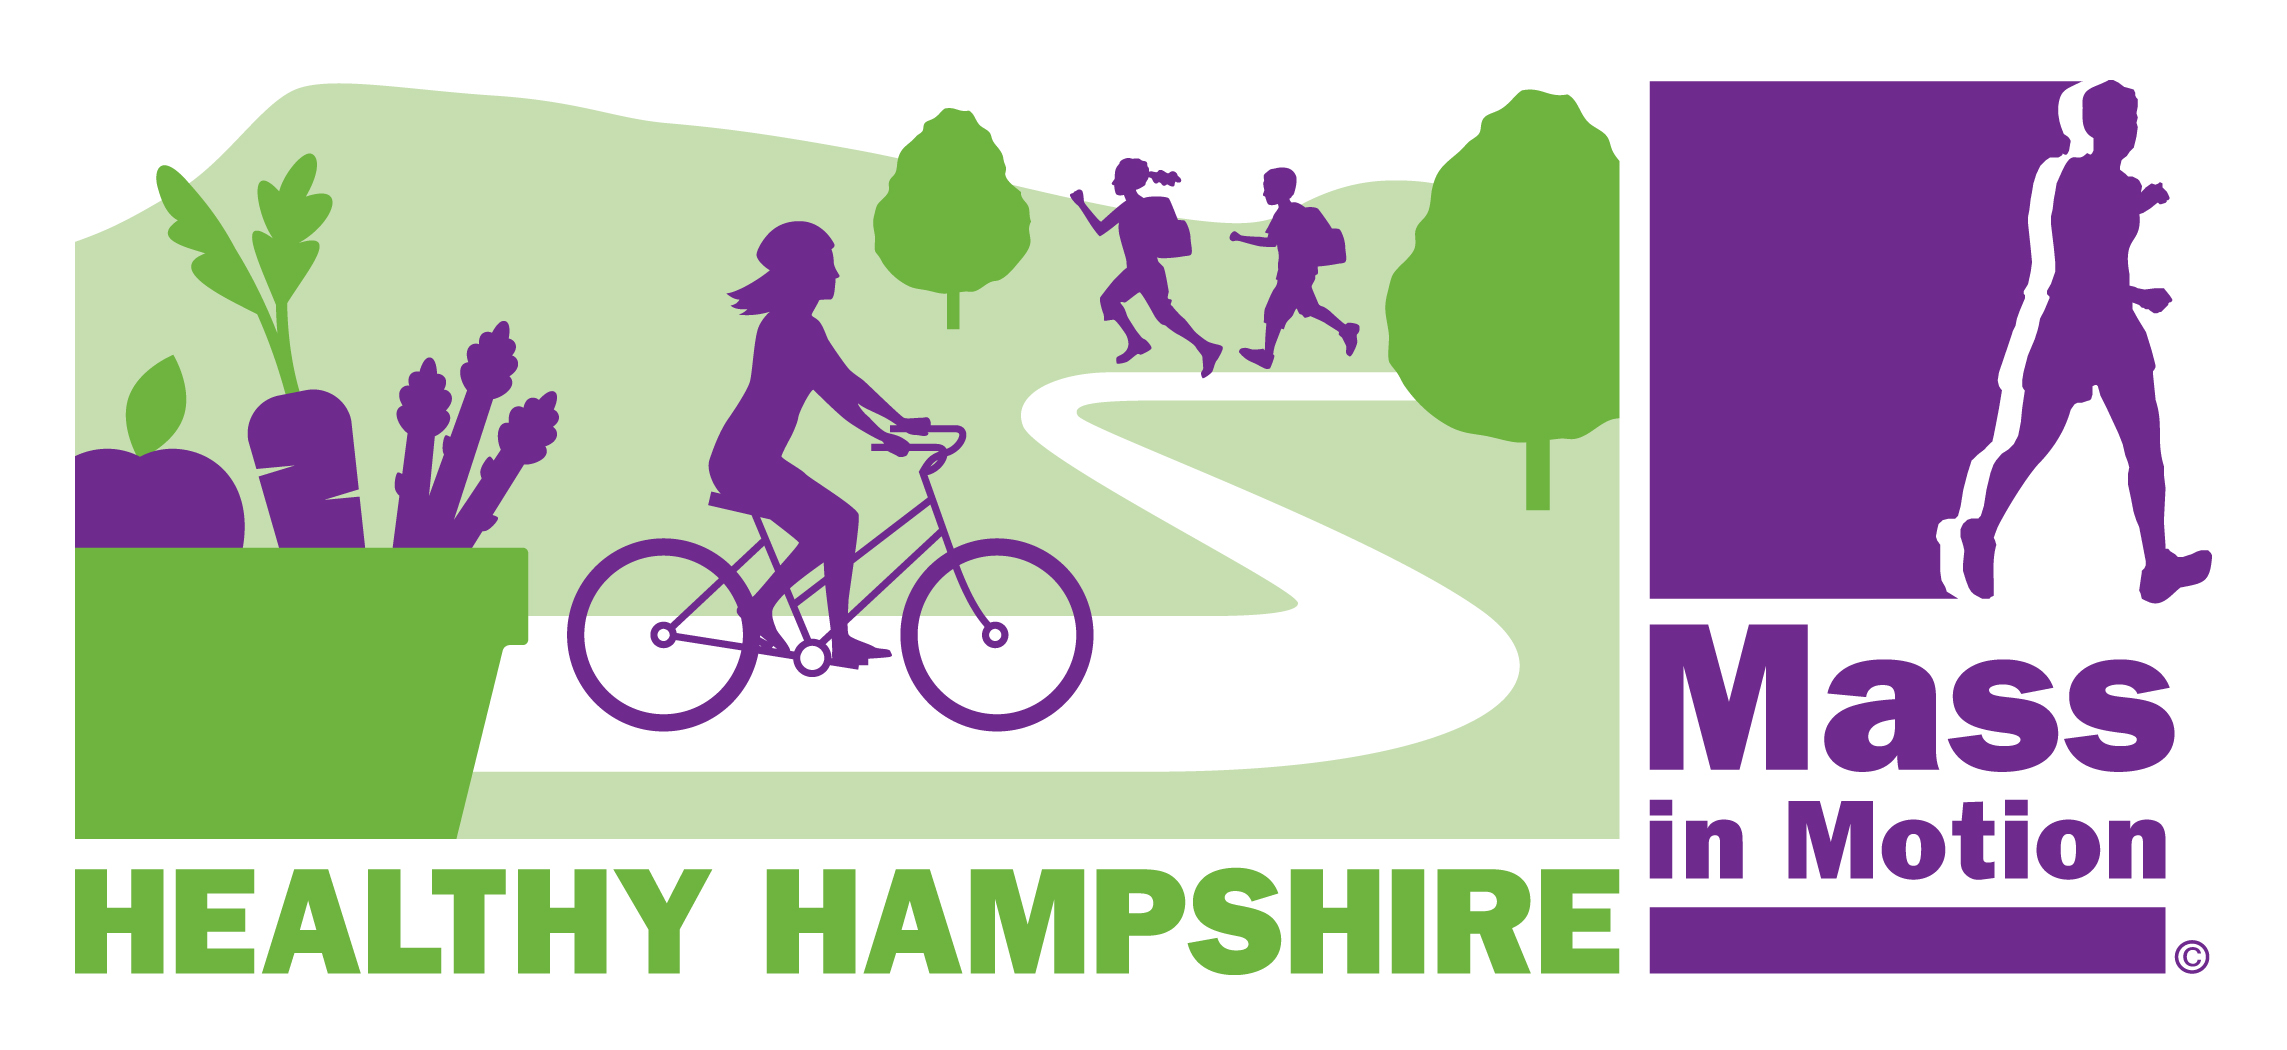 Healthy Hampshire